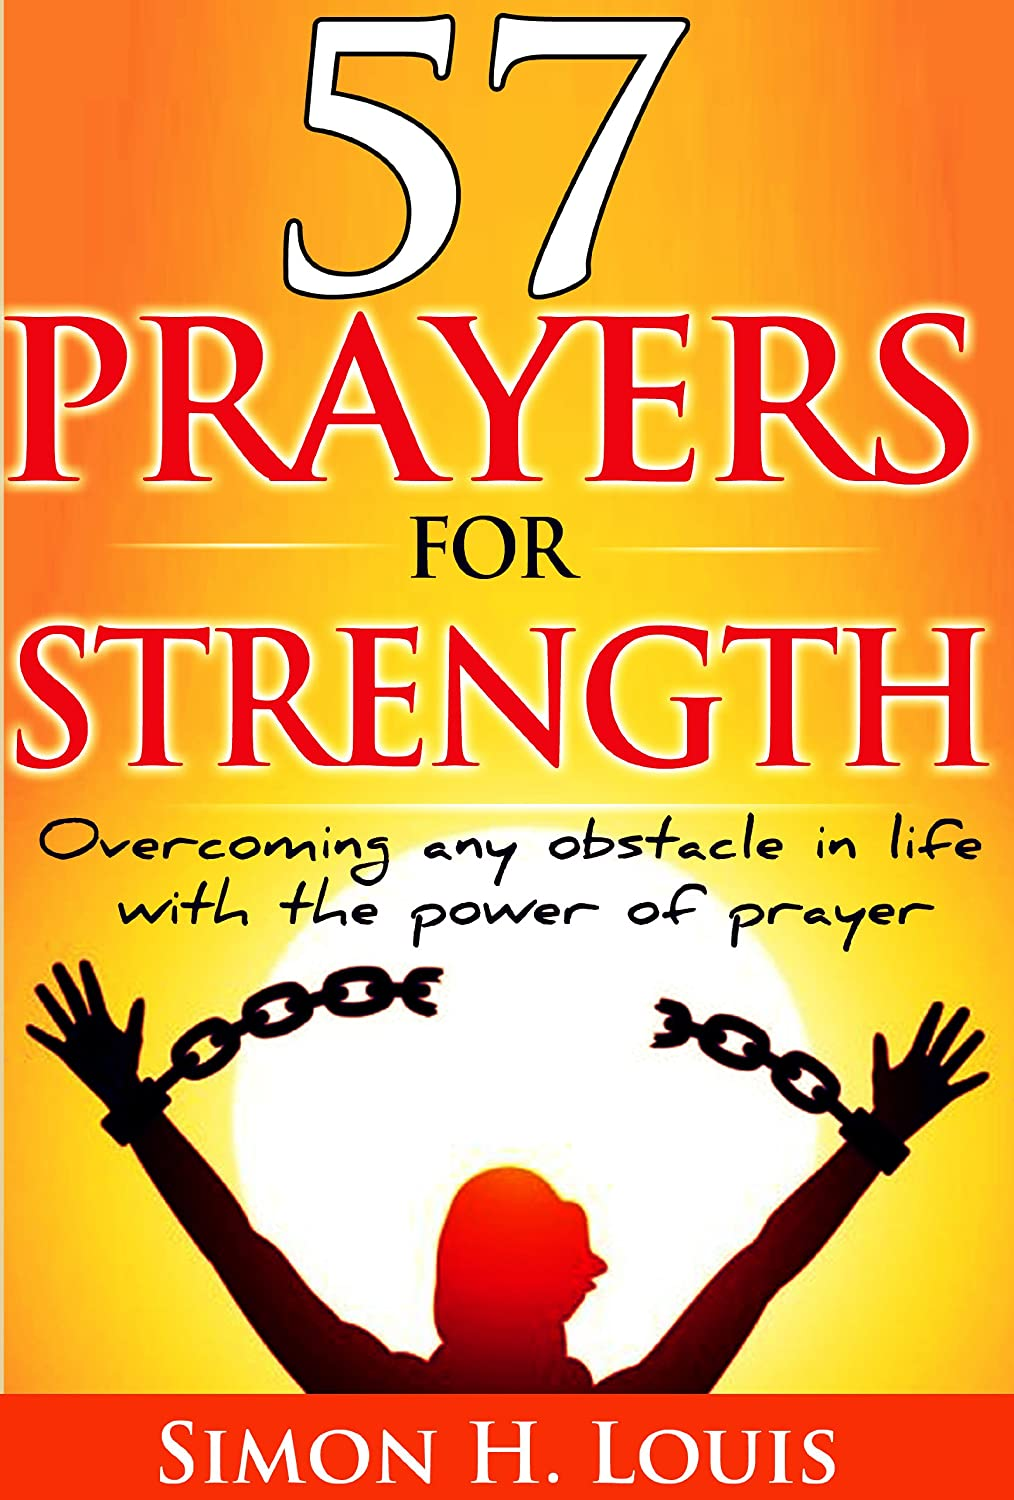 57 prayers for strength: Overcoming any obstacle in life with the power of prayer (Faith and modern life)